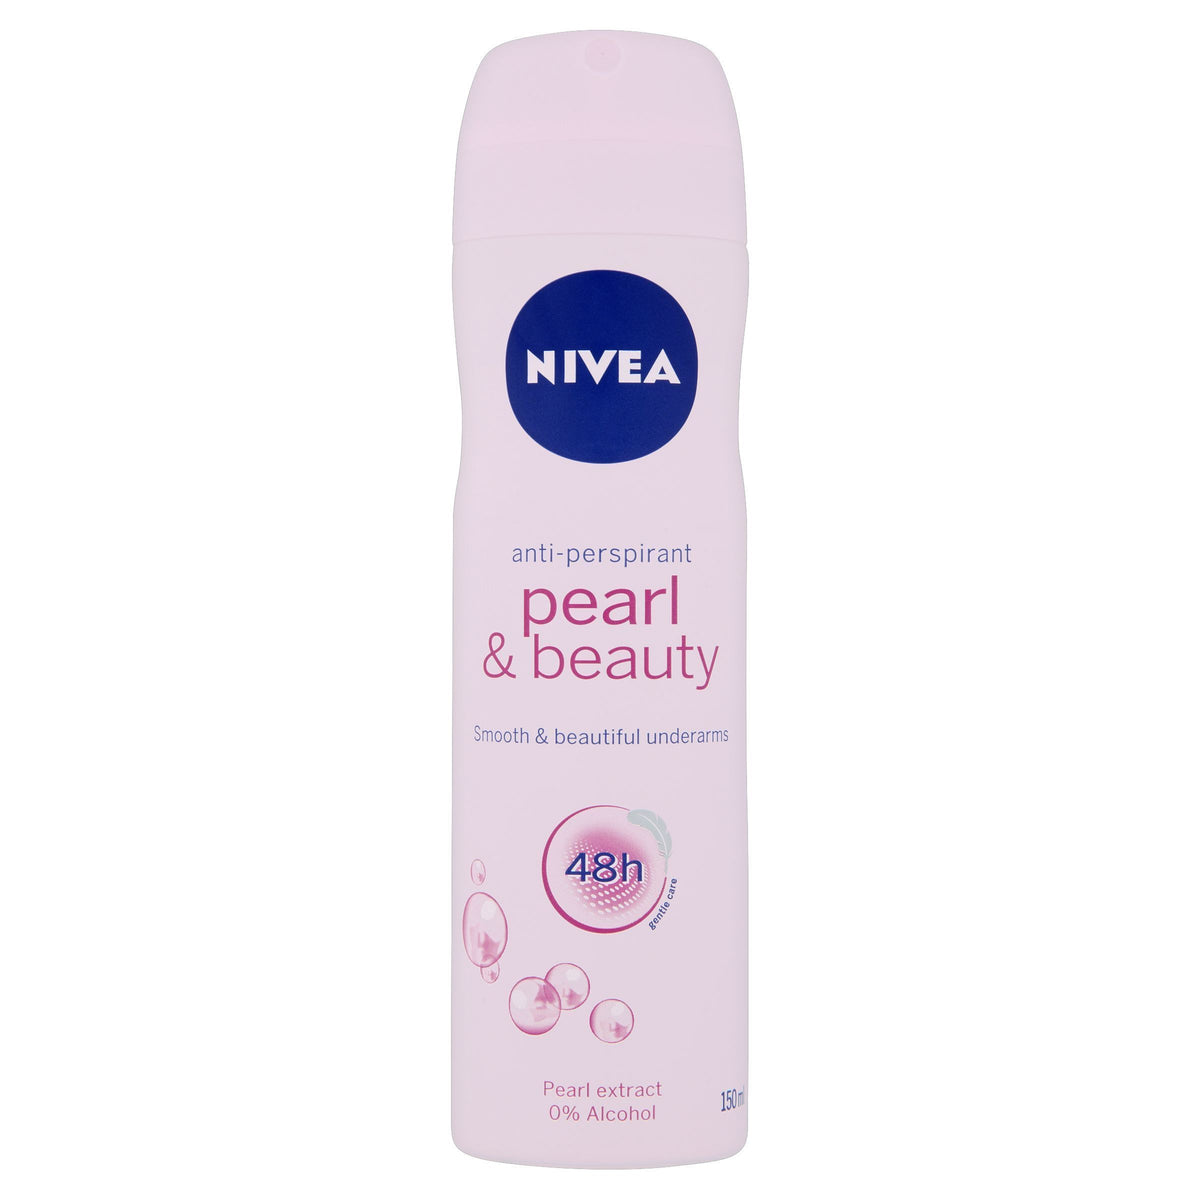 Nivea Pearl & Beauty 48h Anti-Perspirant 150ml - Pack of 6